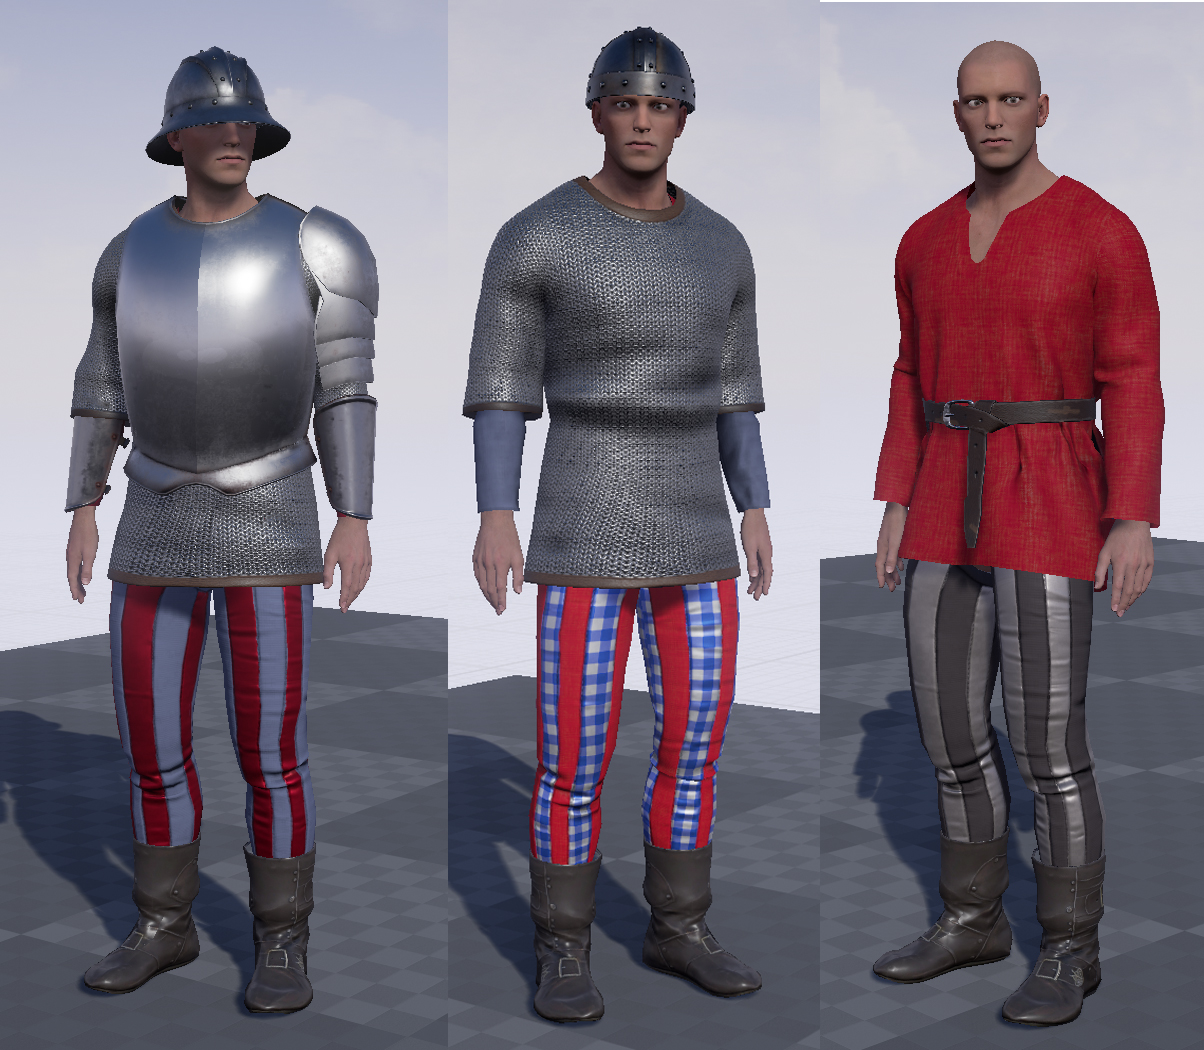 Different clothing configurations